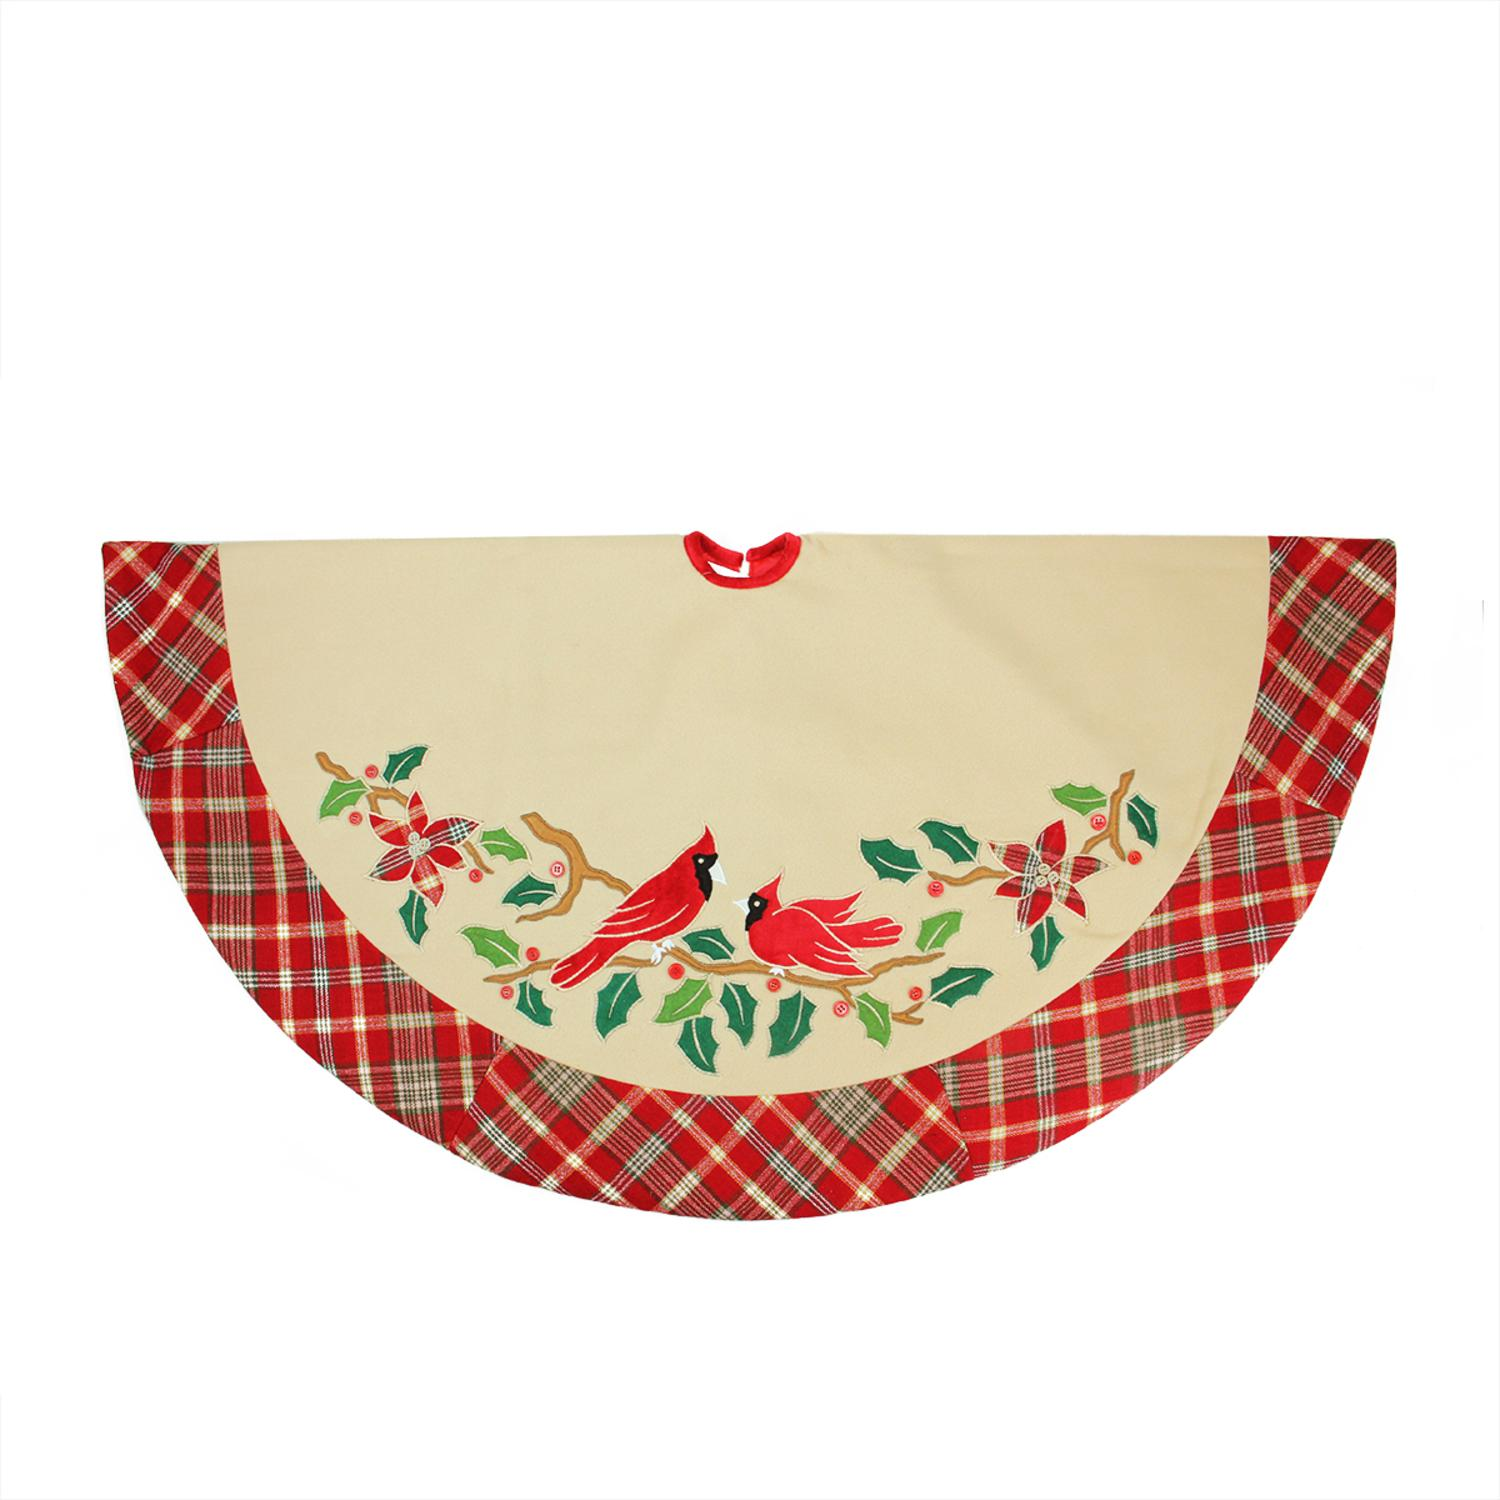 "48"" Country Cabin Embroidered Cardinal Birds Christmas Tree Skirt with Red Plaid Border"